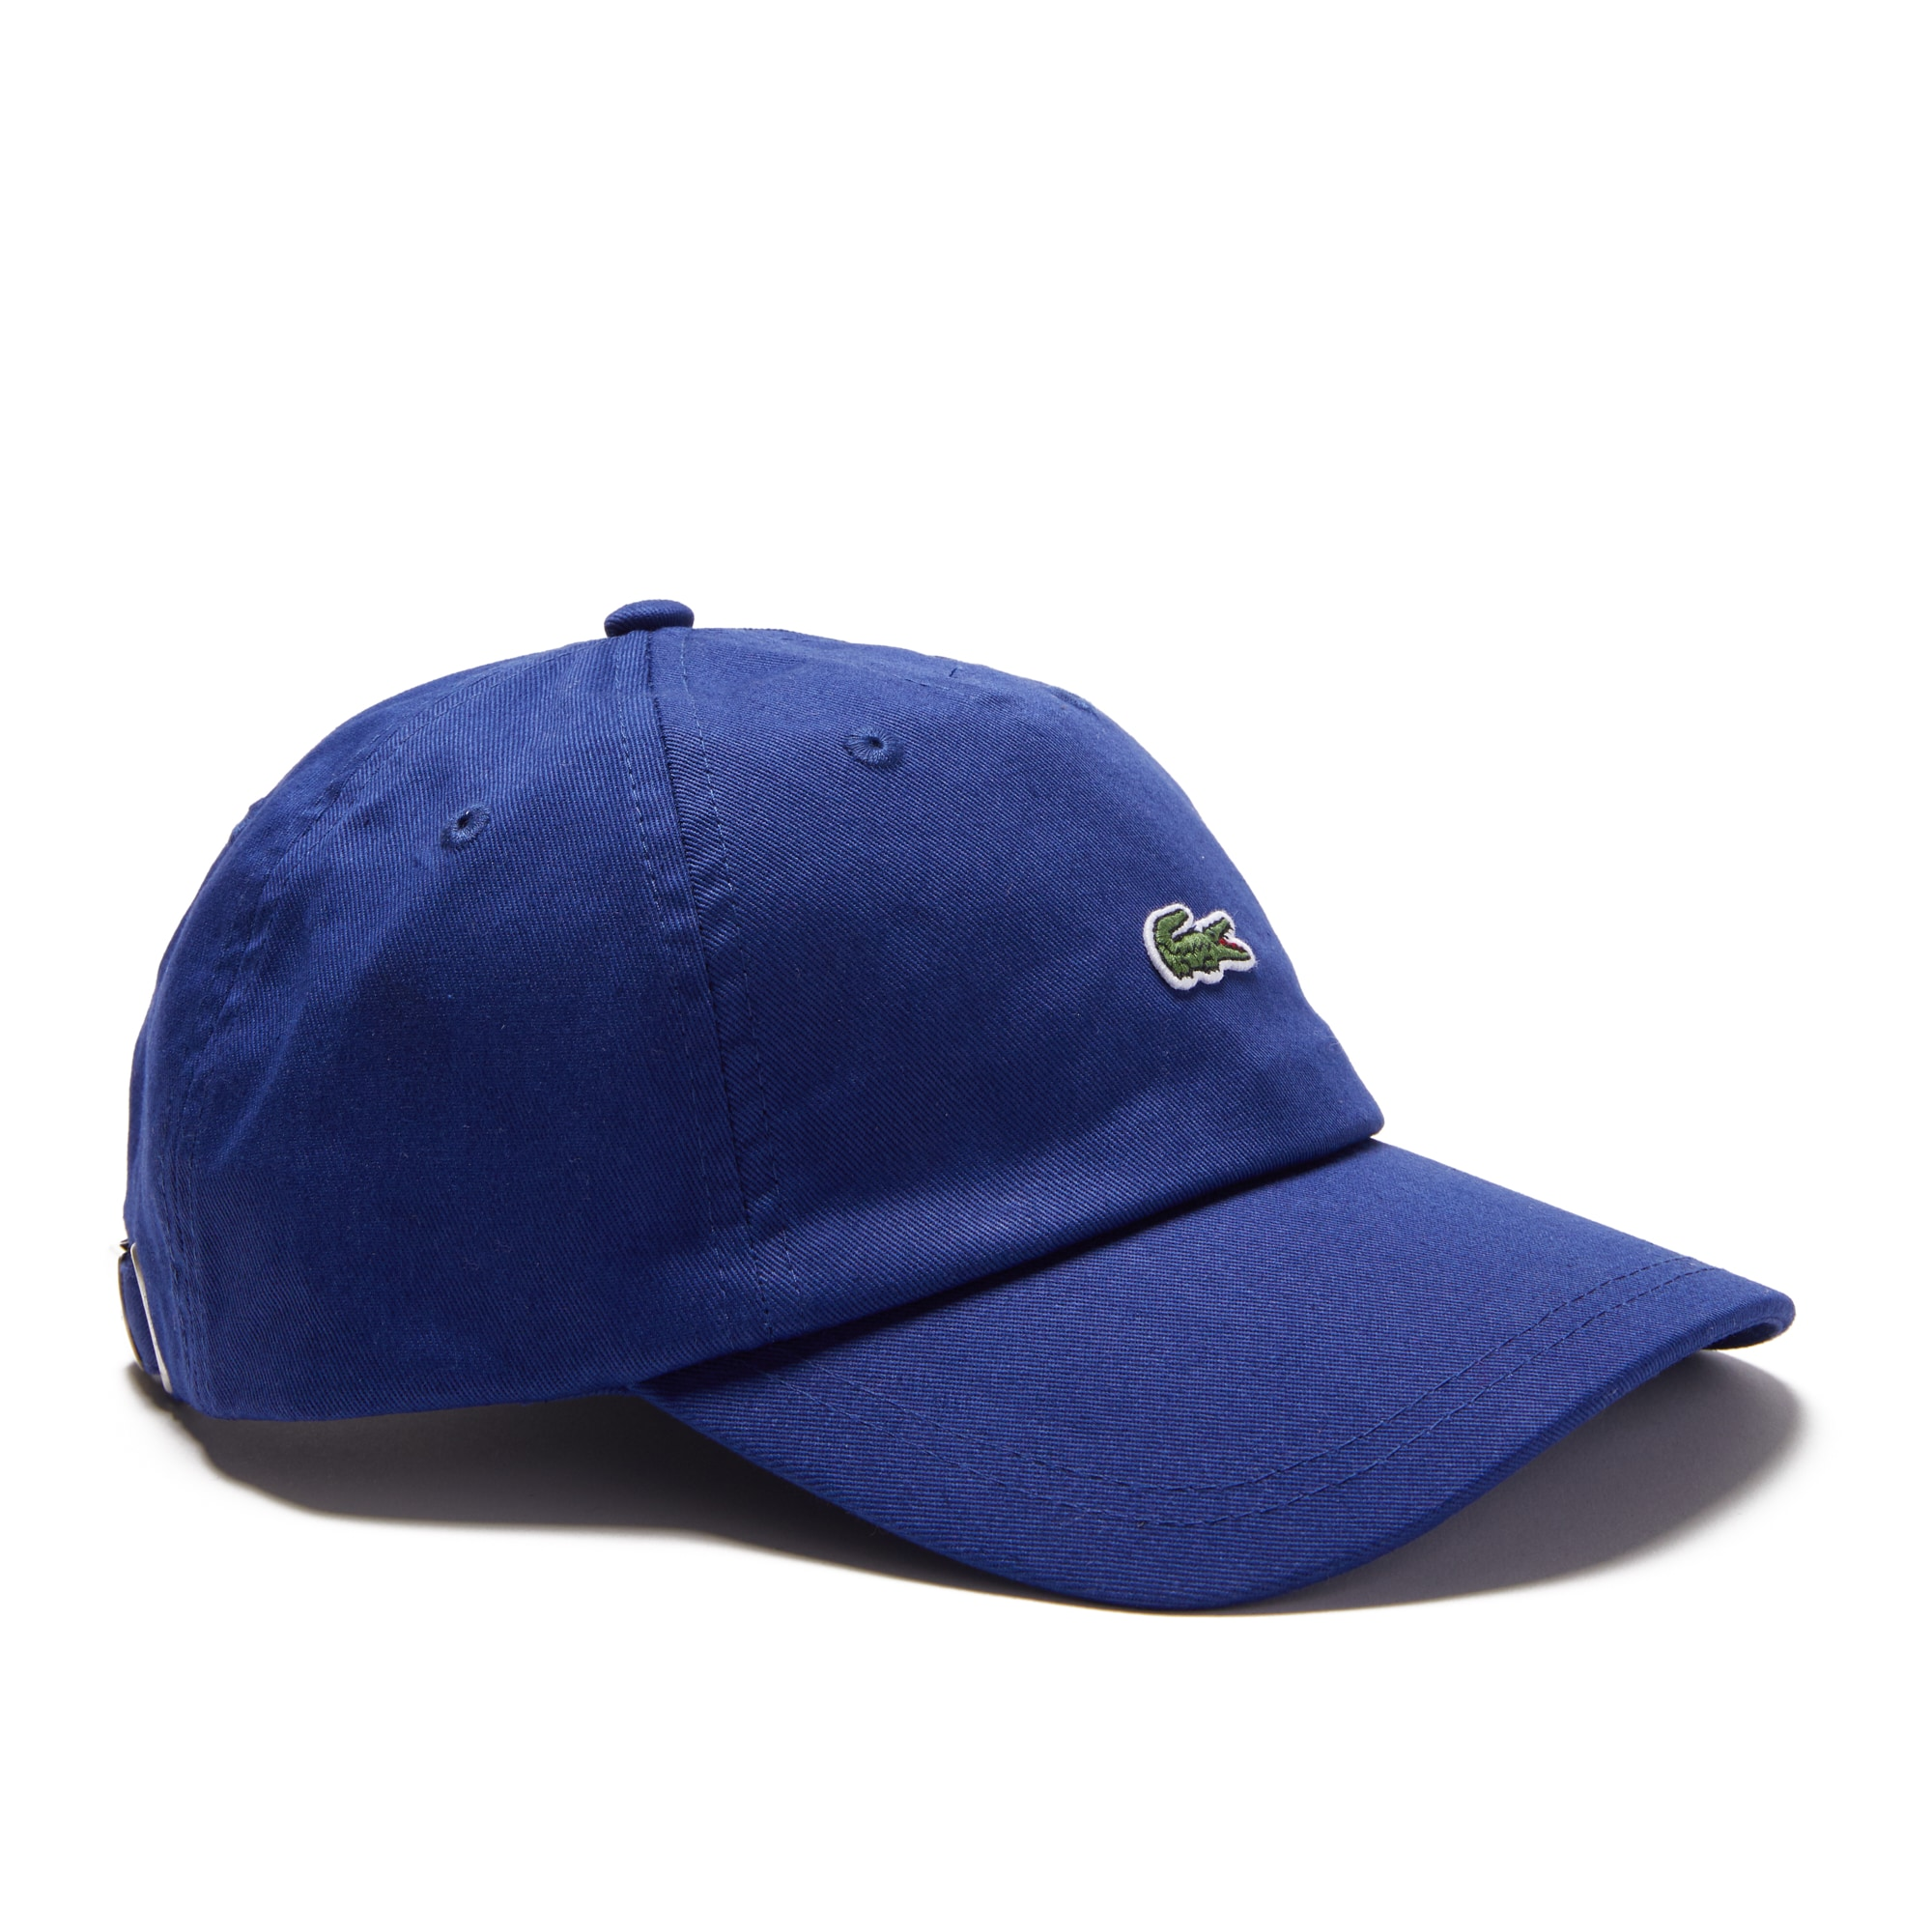 라코스테 Lacoste Mens Embroidered Crocodile Cotton Cap,navy blue